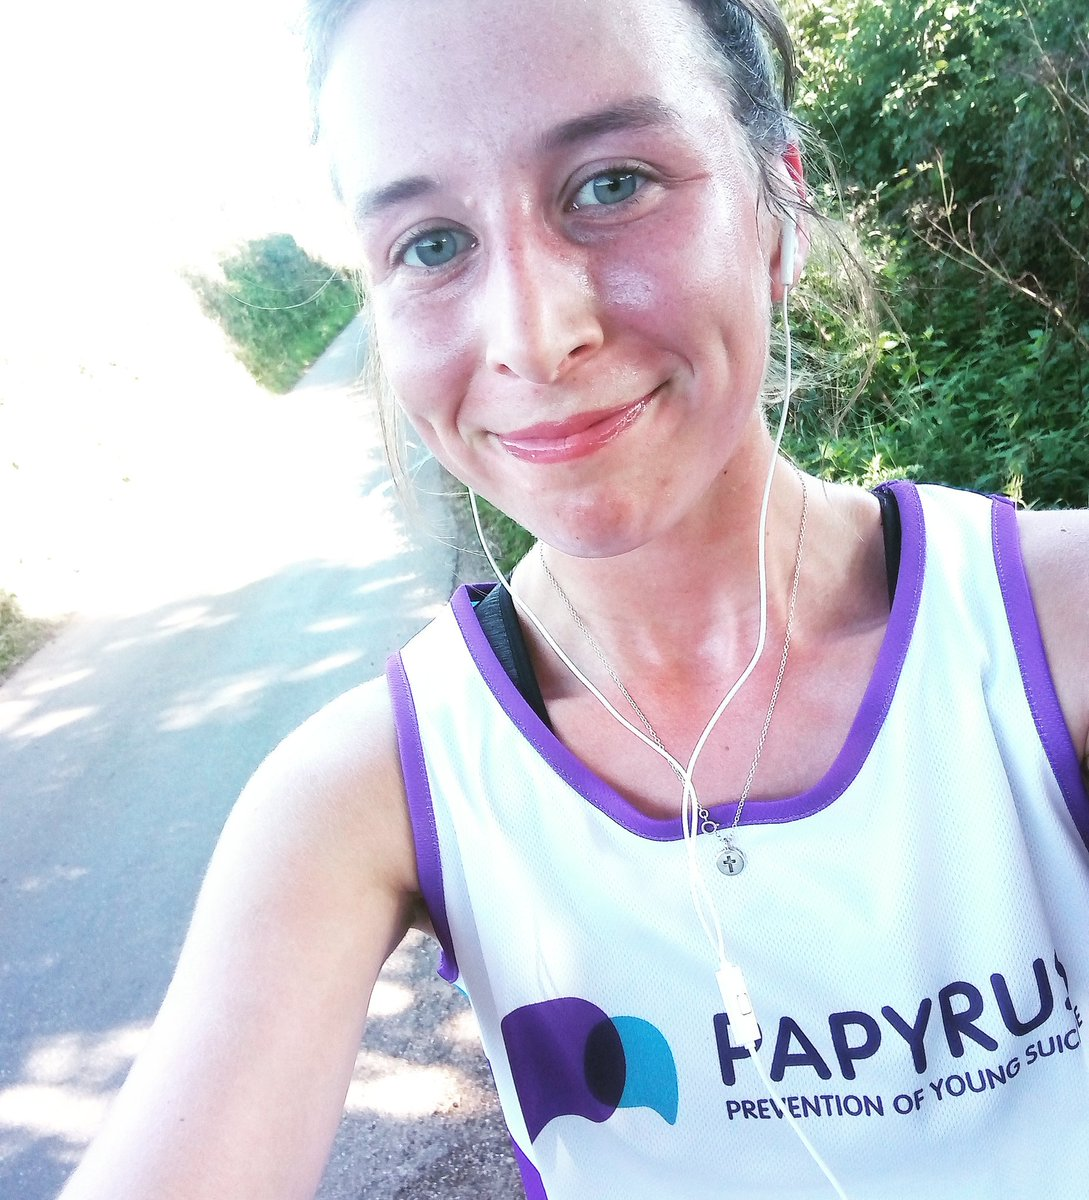 Last few days before taking on @aweventsteam Mumbles half ironman on Saturday ! Raising money for @PAPYRUS_tweets saving young lives! Fundraising link here justgiving.com/fundraising/em…